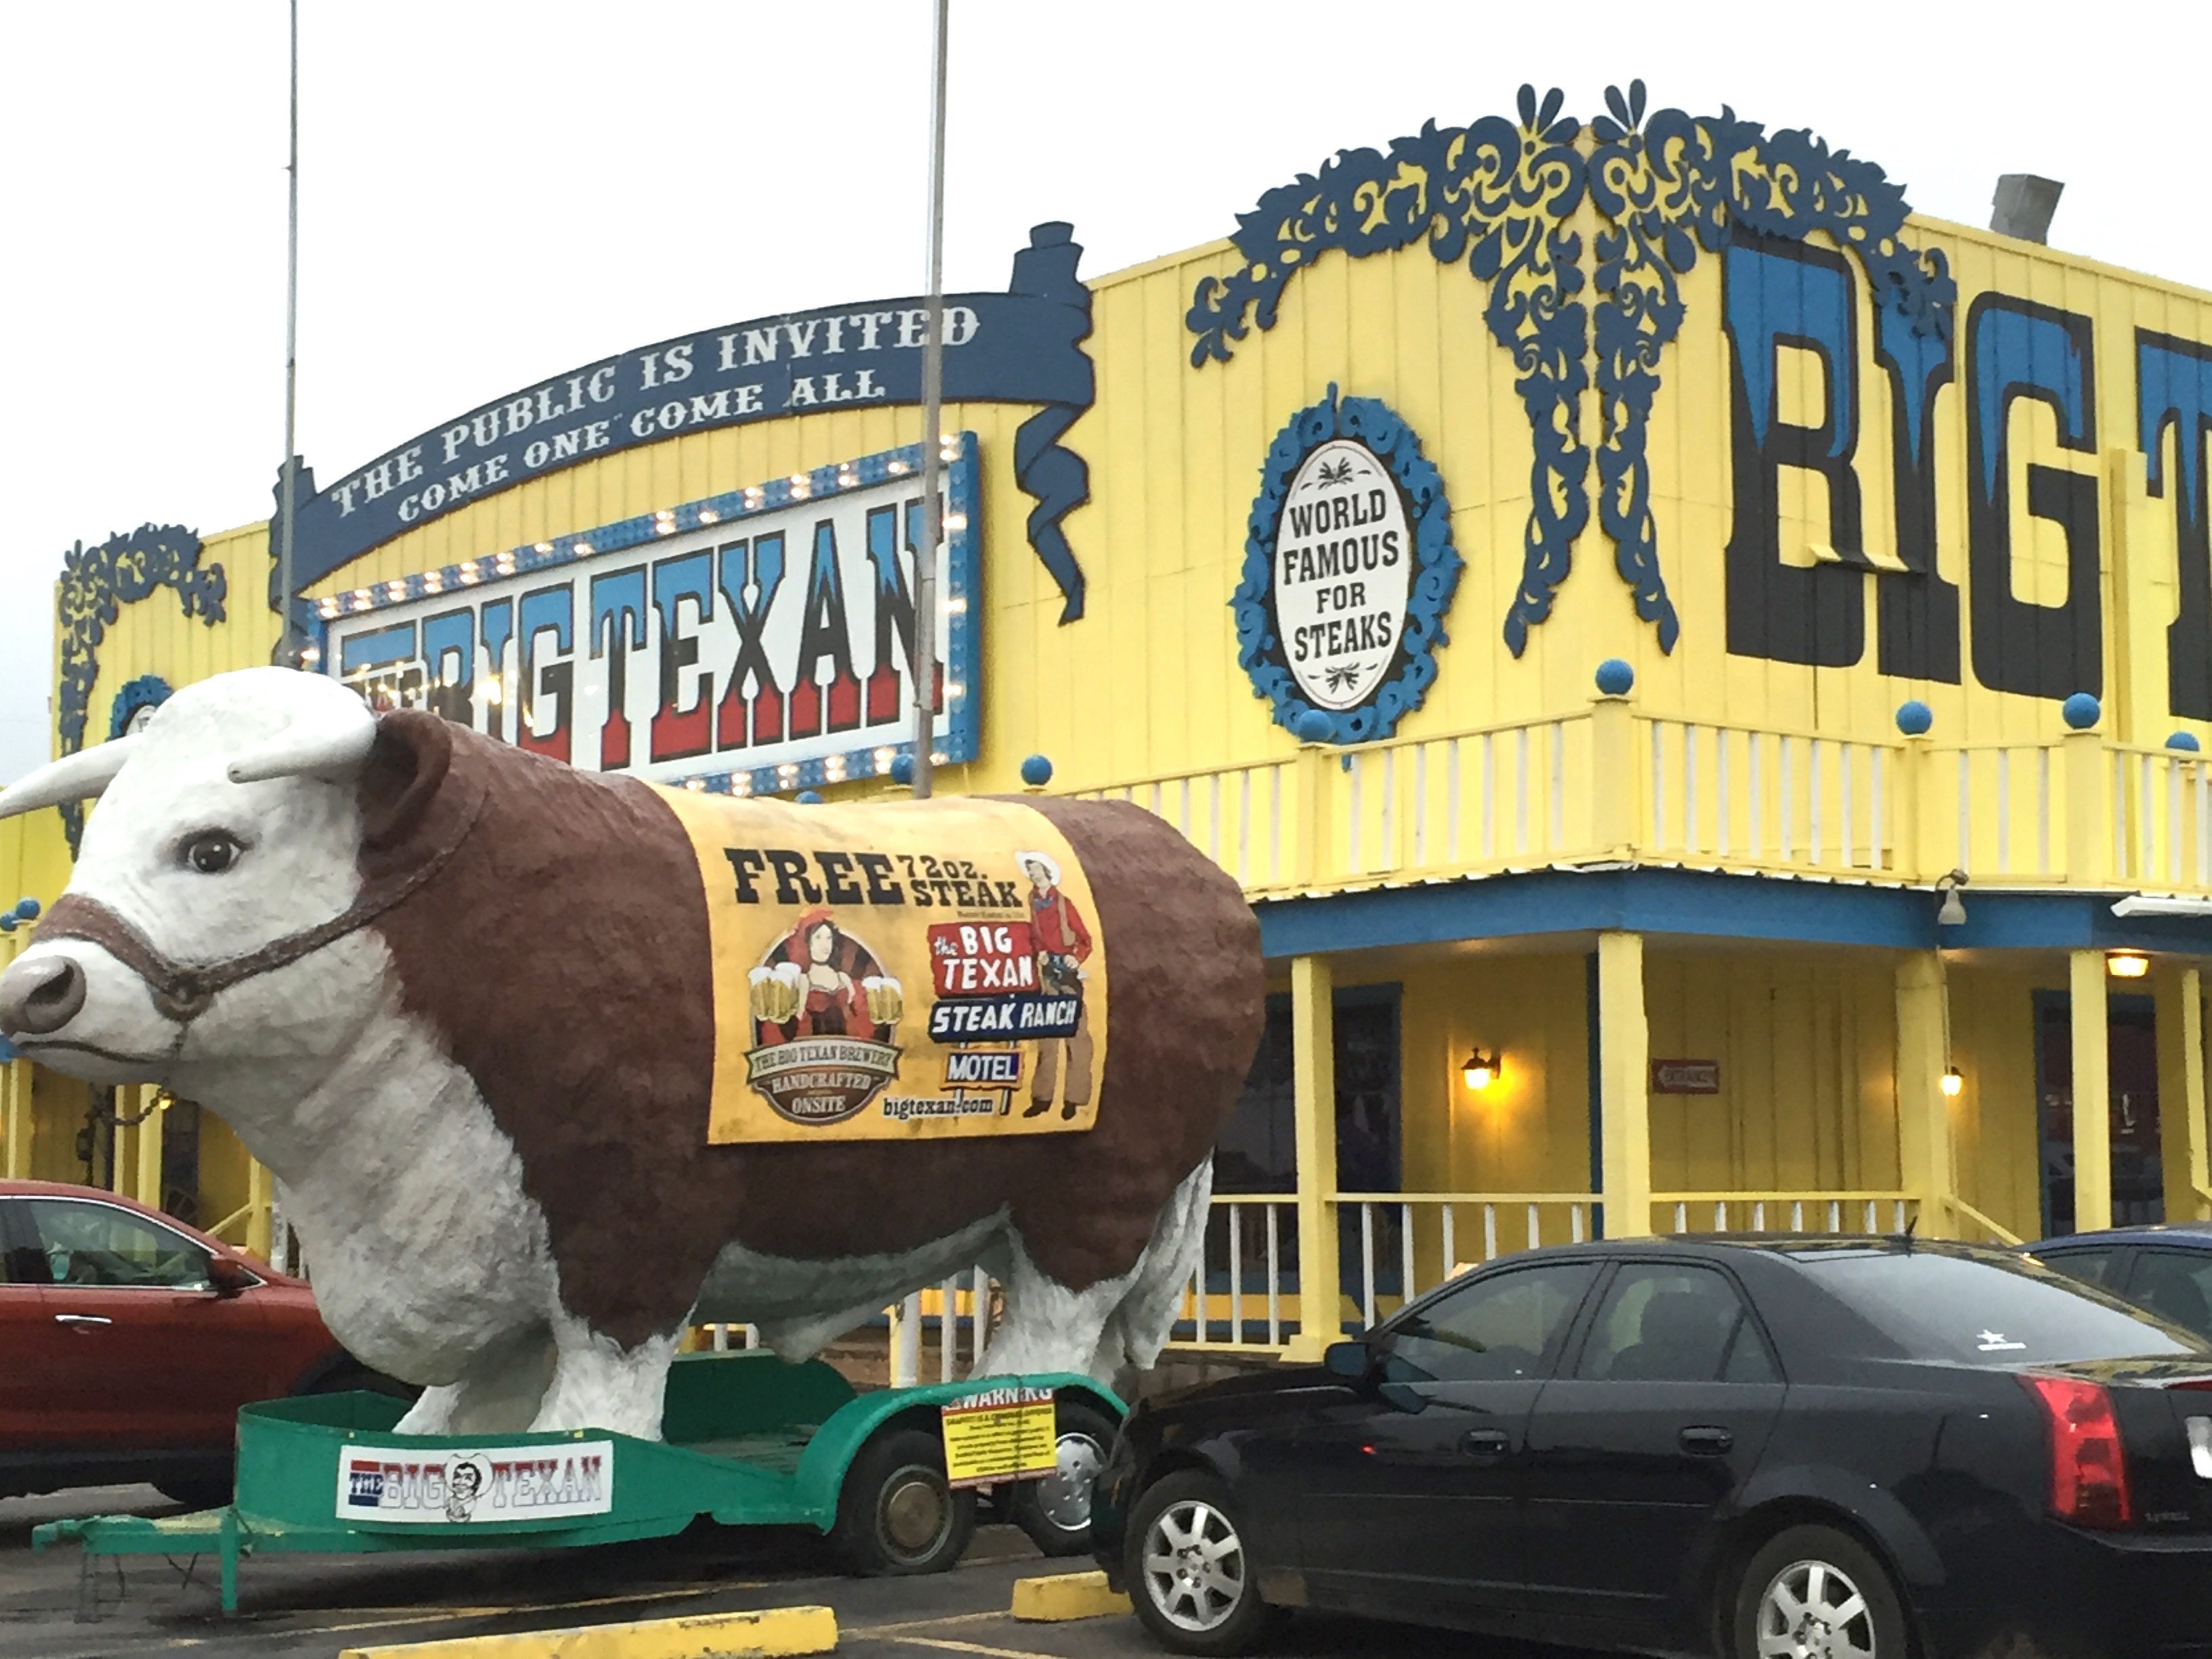 Big Texan steer